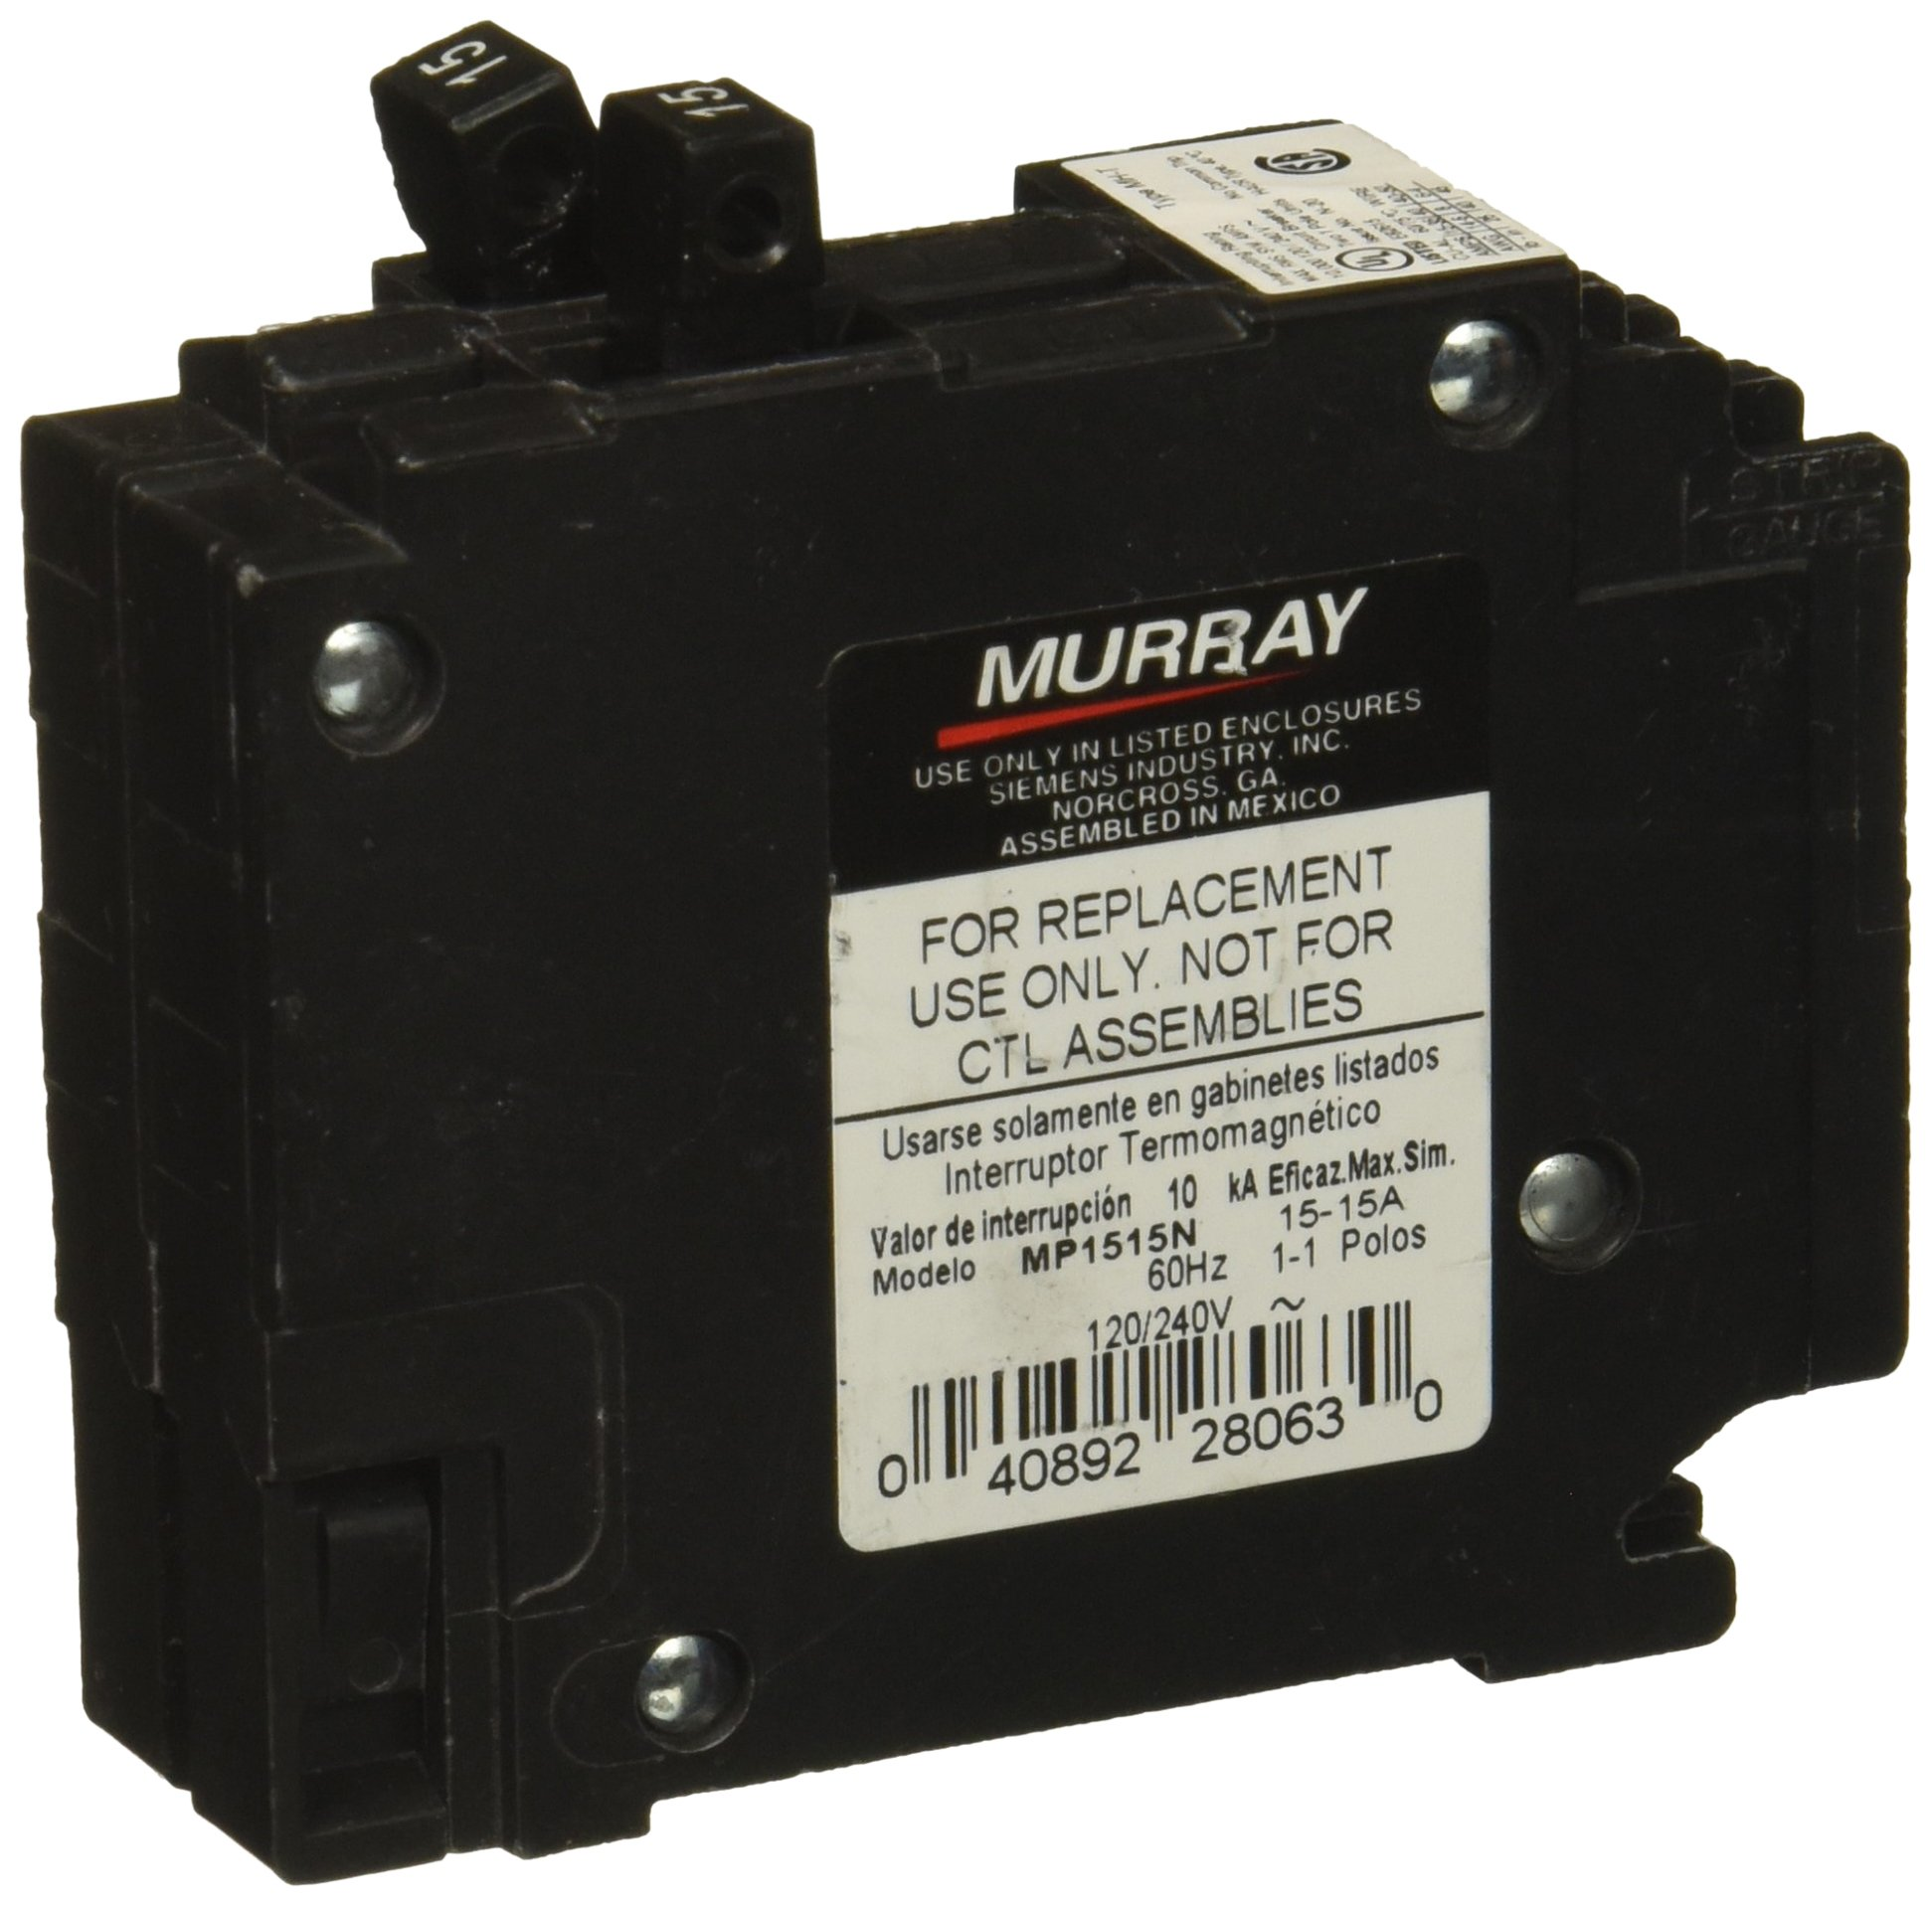 Murray MP1515 Two 15-Amp Single Pole 120-Volt Non-Current Limiting Circuit Breaker